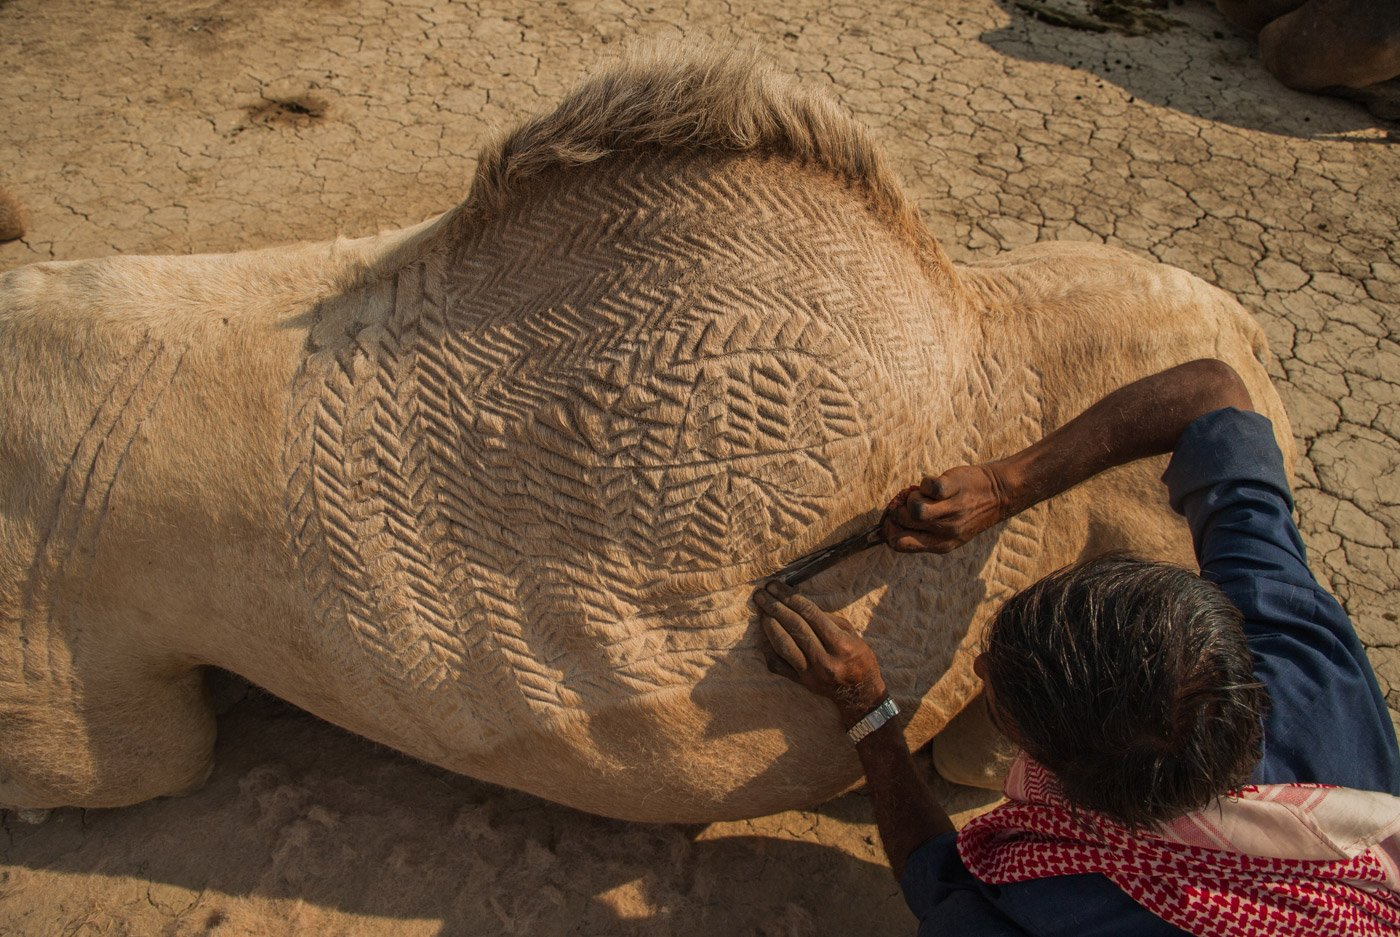 Camels are usually sheared once or twice a year just before the summer – the herders use scissors to do the elaborate shearing themselves. Credit: Ritayan Mukherjee/PARI